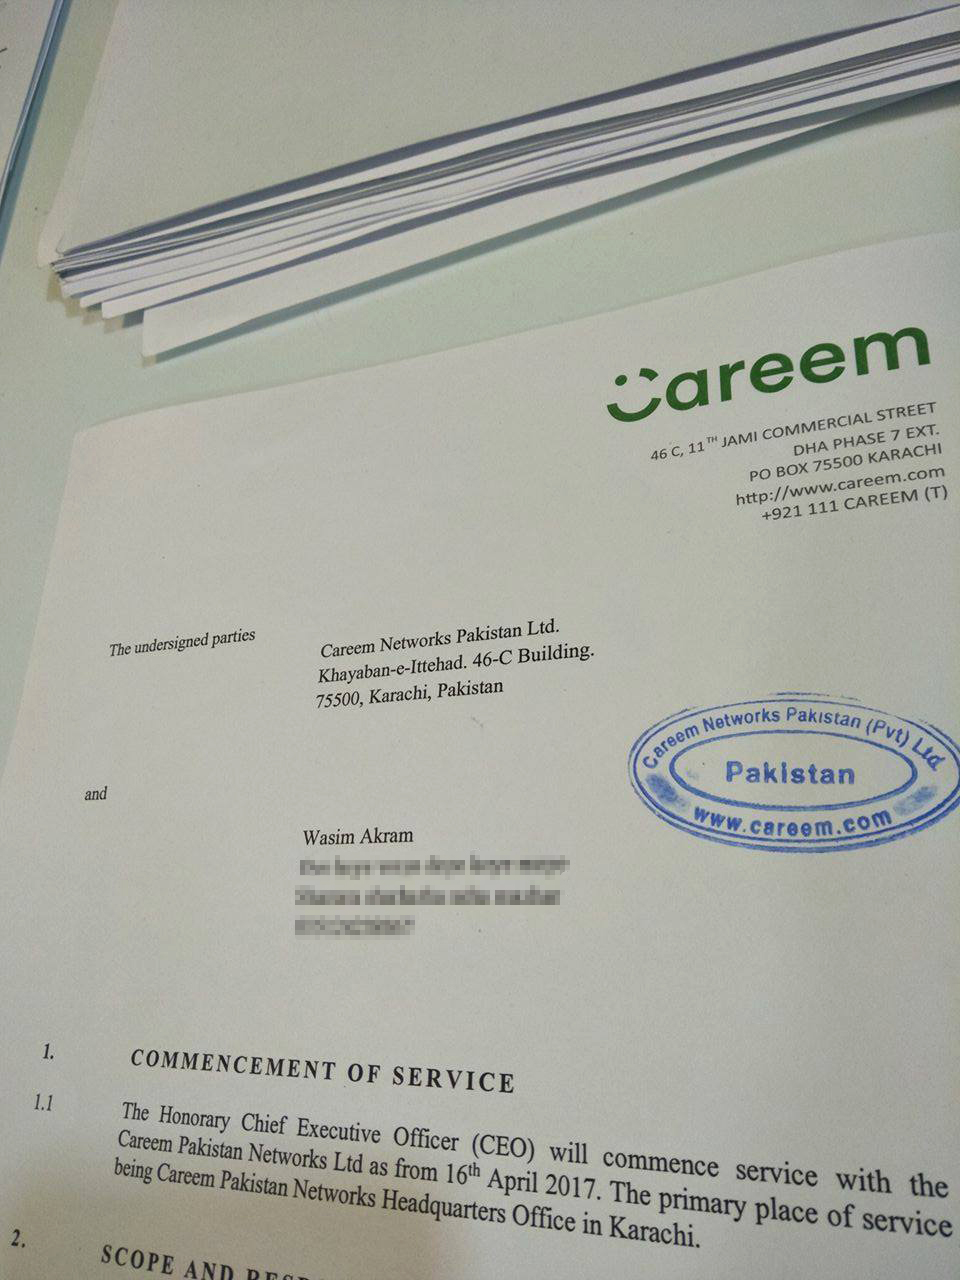 Wasim Akram Joins Careem As Honorary CEO, But Just For A Single Day